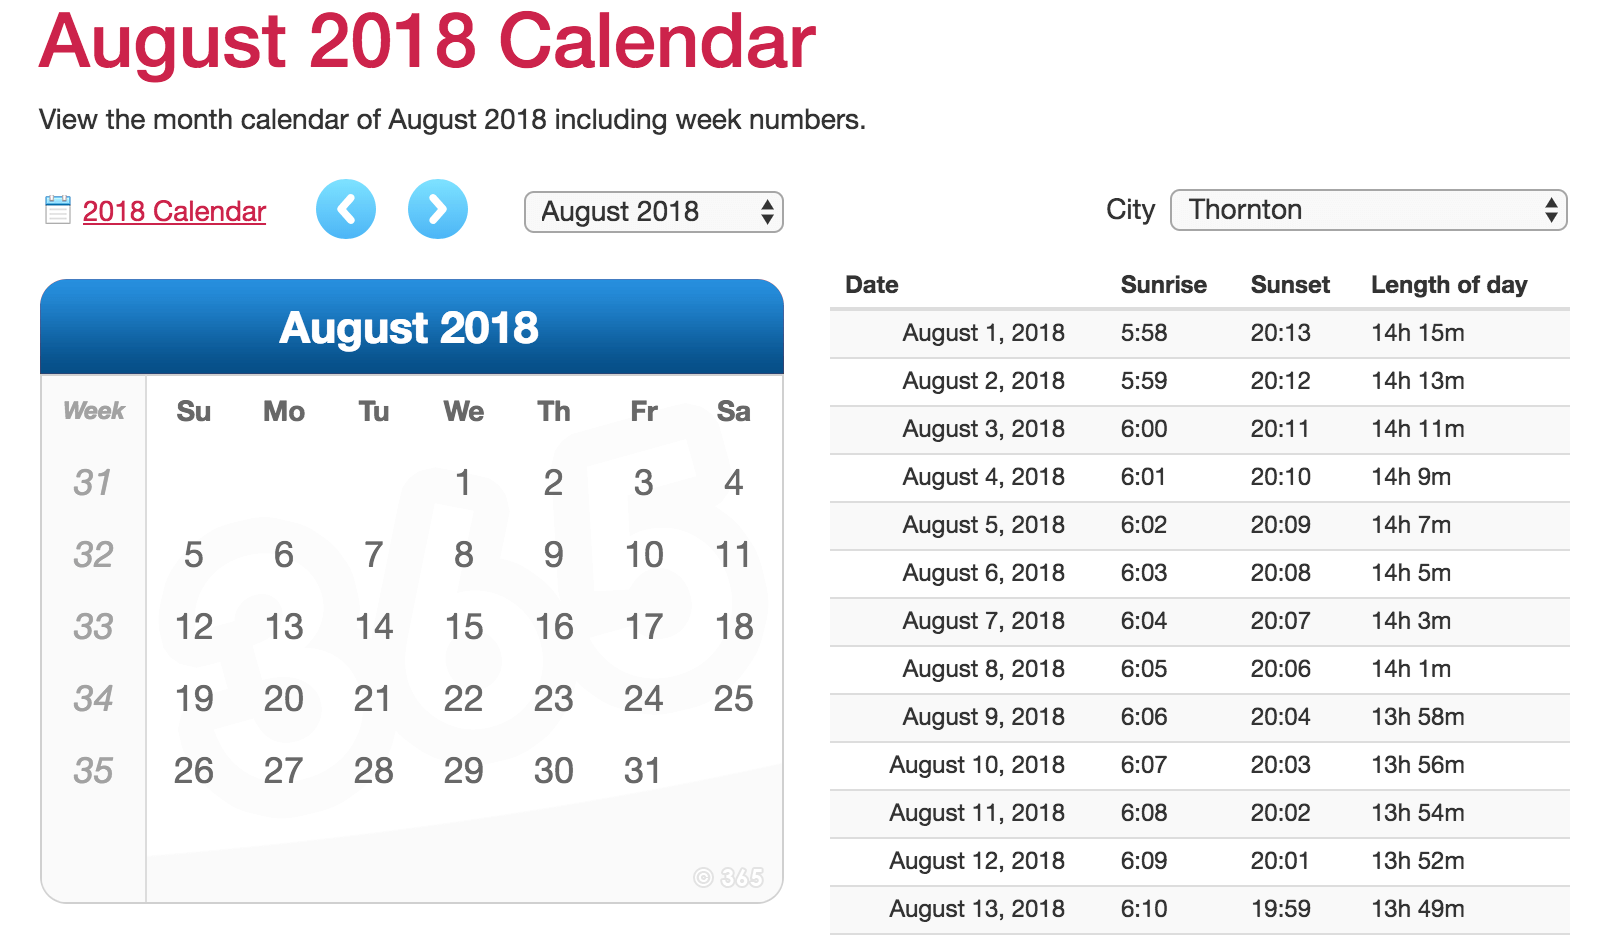 editing calendar 365 templates for August